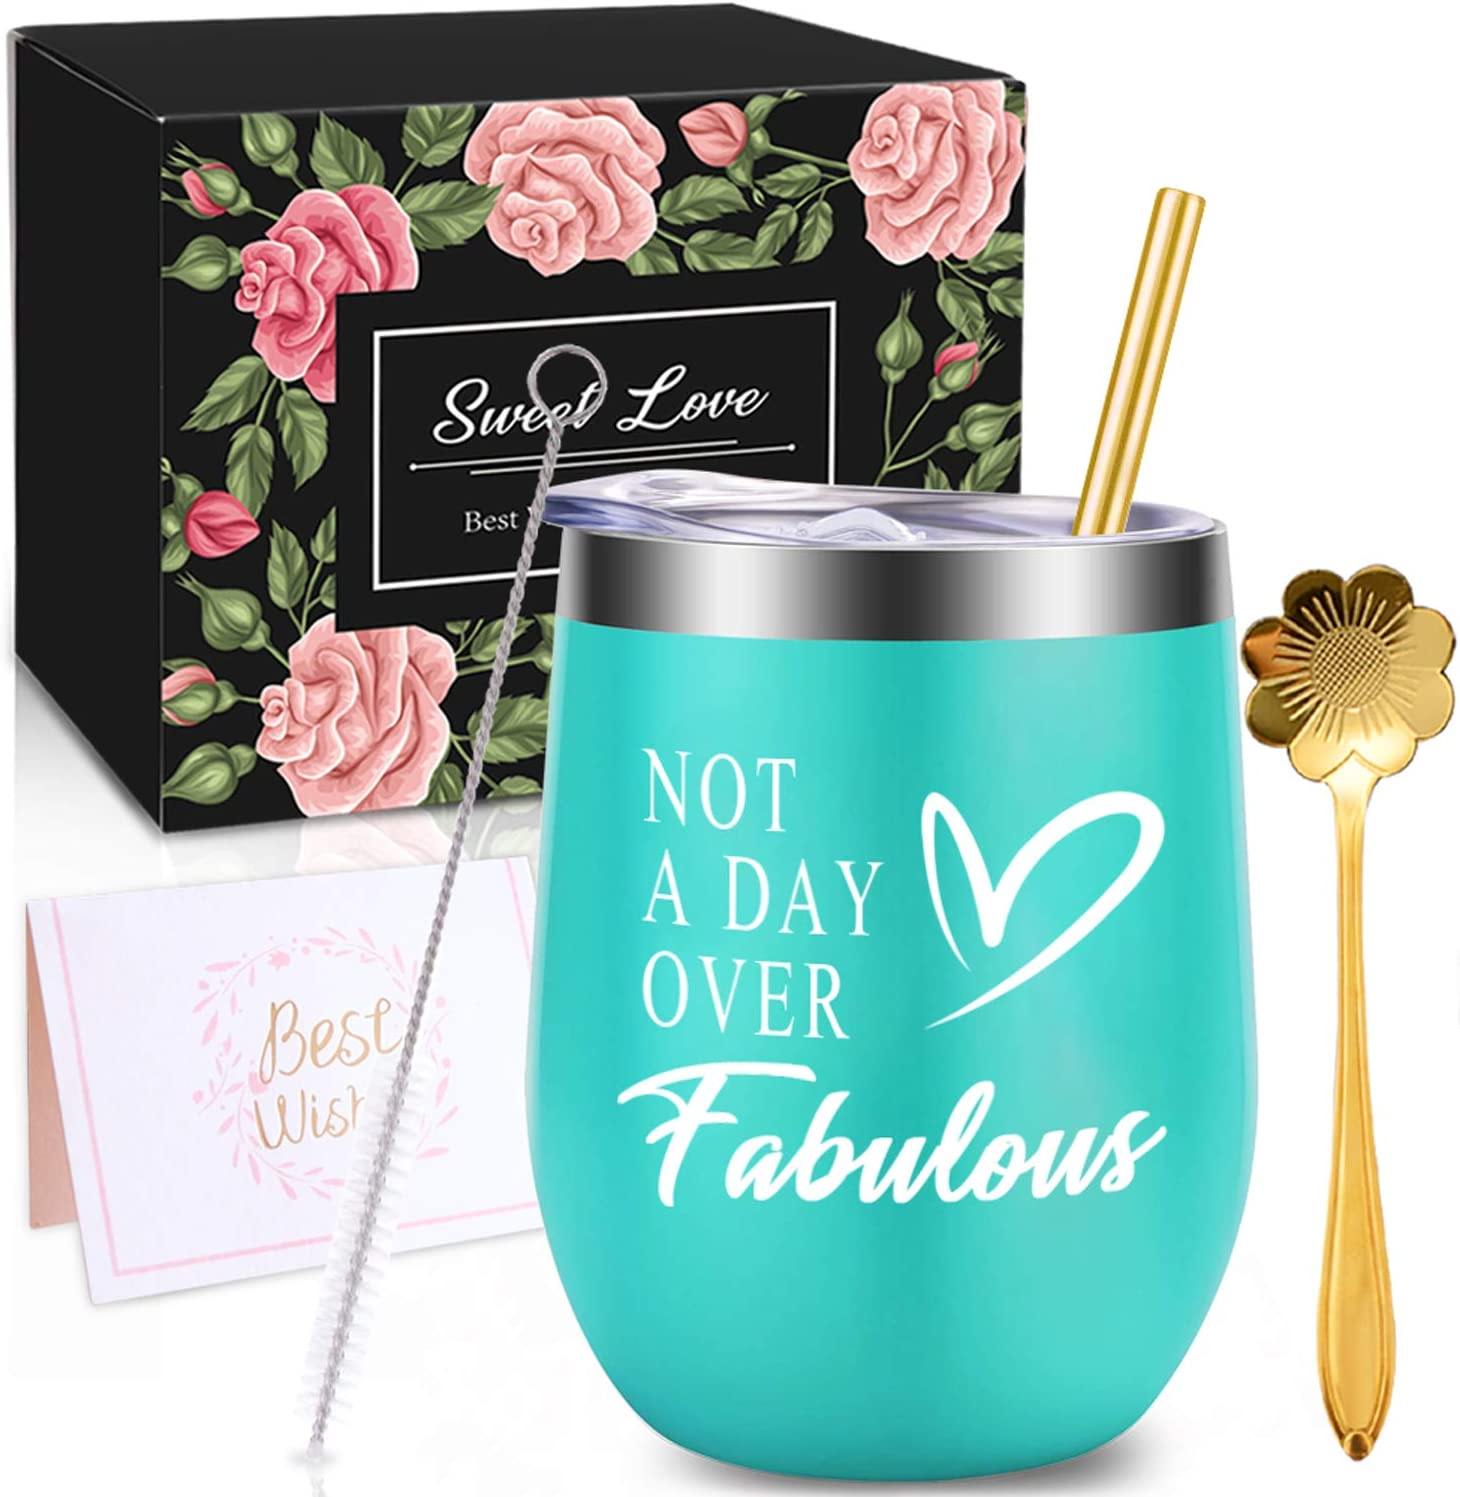 Amazon Com Wonday Gifts For Women Christmas Birthday Gifts For Women Wine Gifts Ideas For Women Mother Bff Mom Friends Wife Daughter Sister 12 Oz Stainless Steel Wine Tumbler With Lid And Coffee Spoon